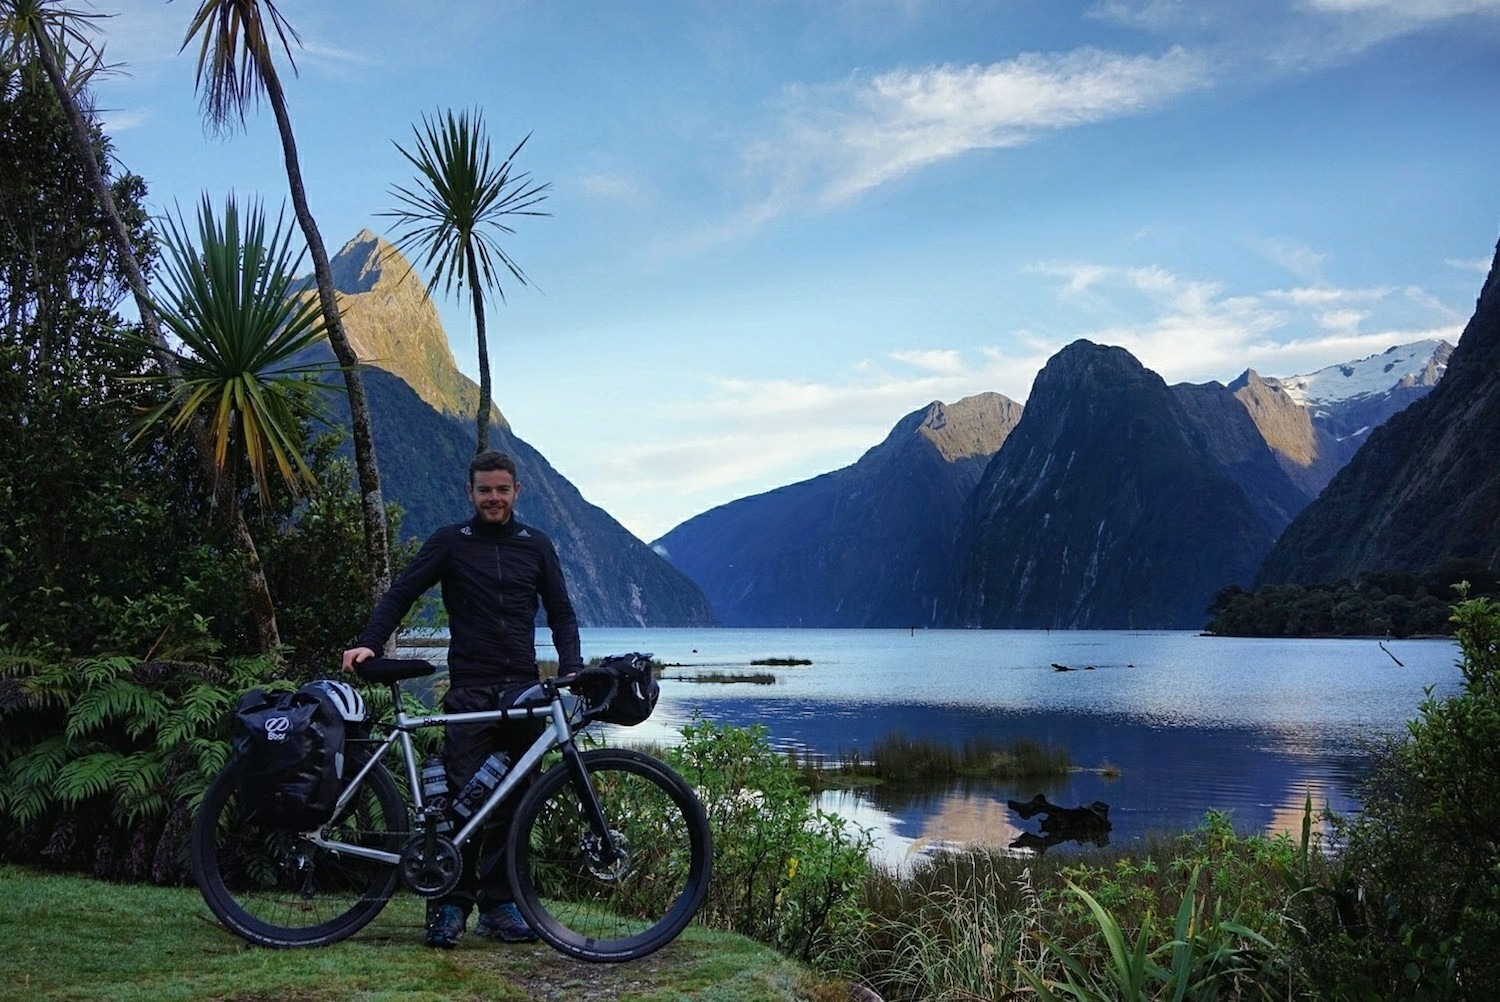 2017 03 24 06 05 36 1 - New Zealand by bike? Why not?!